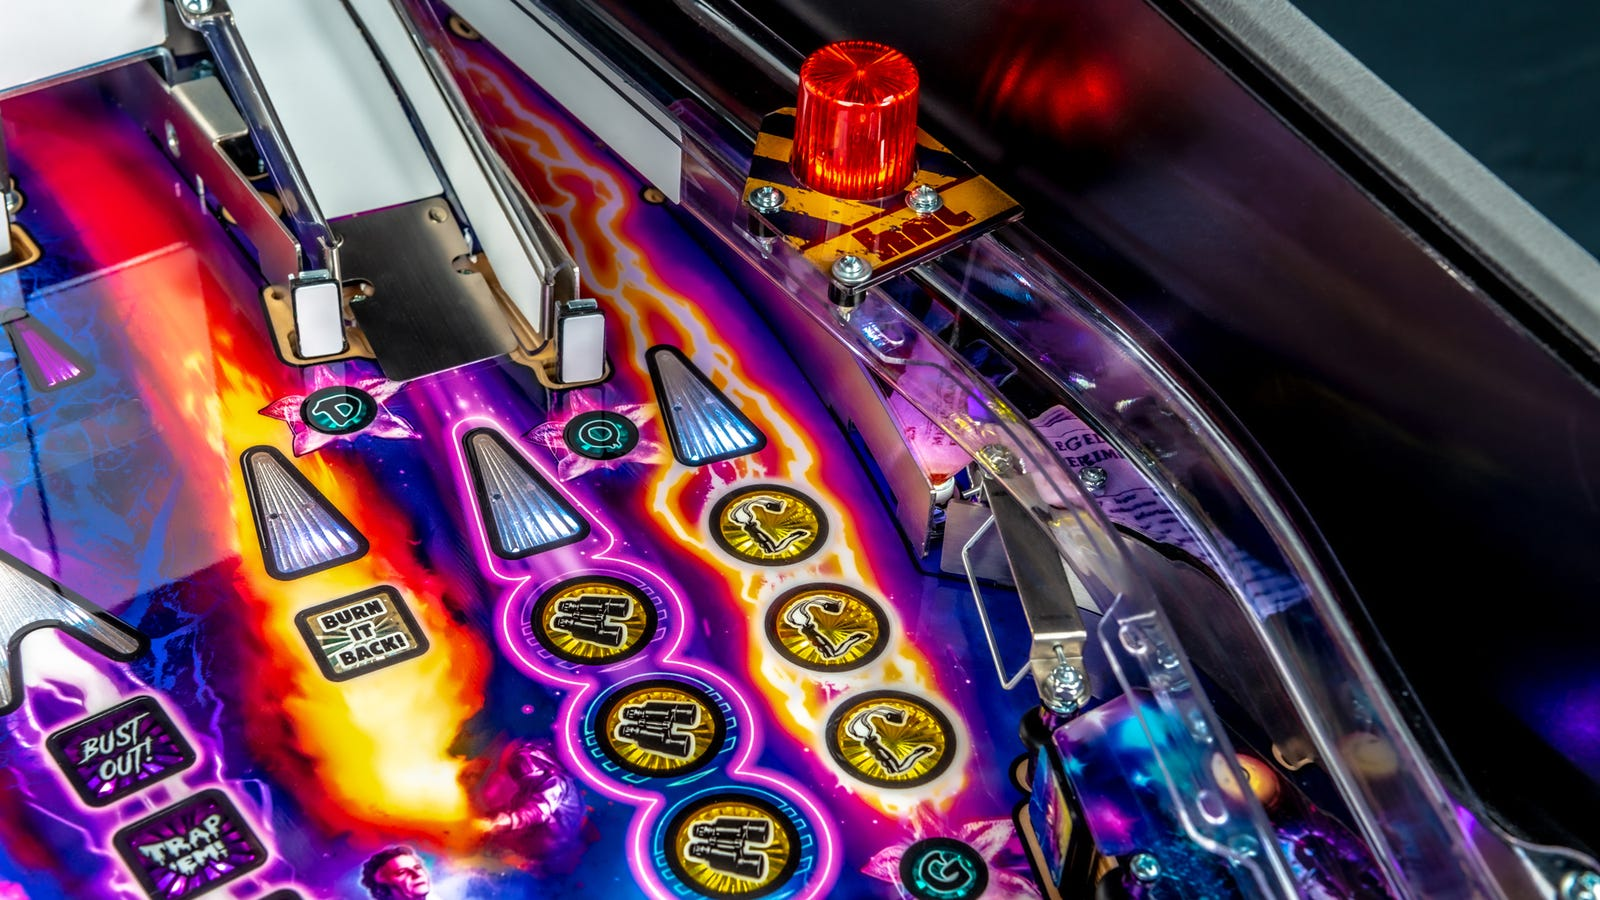 Classic pinball table elements like ramps and endless flashing lights are also included.